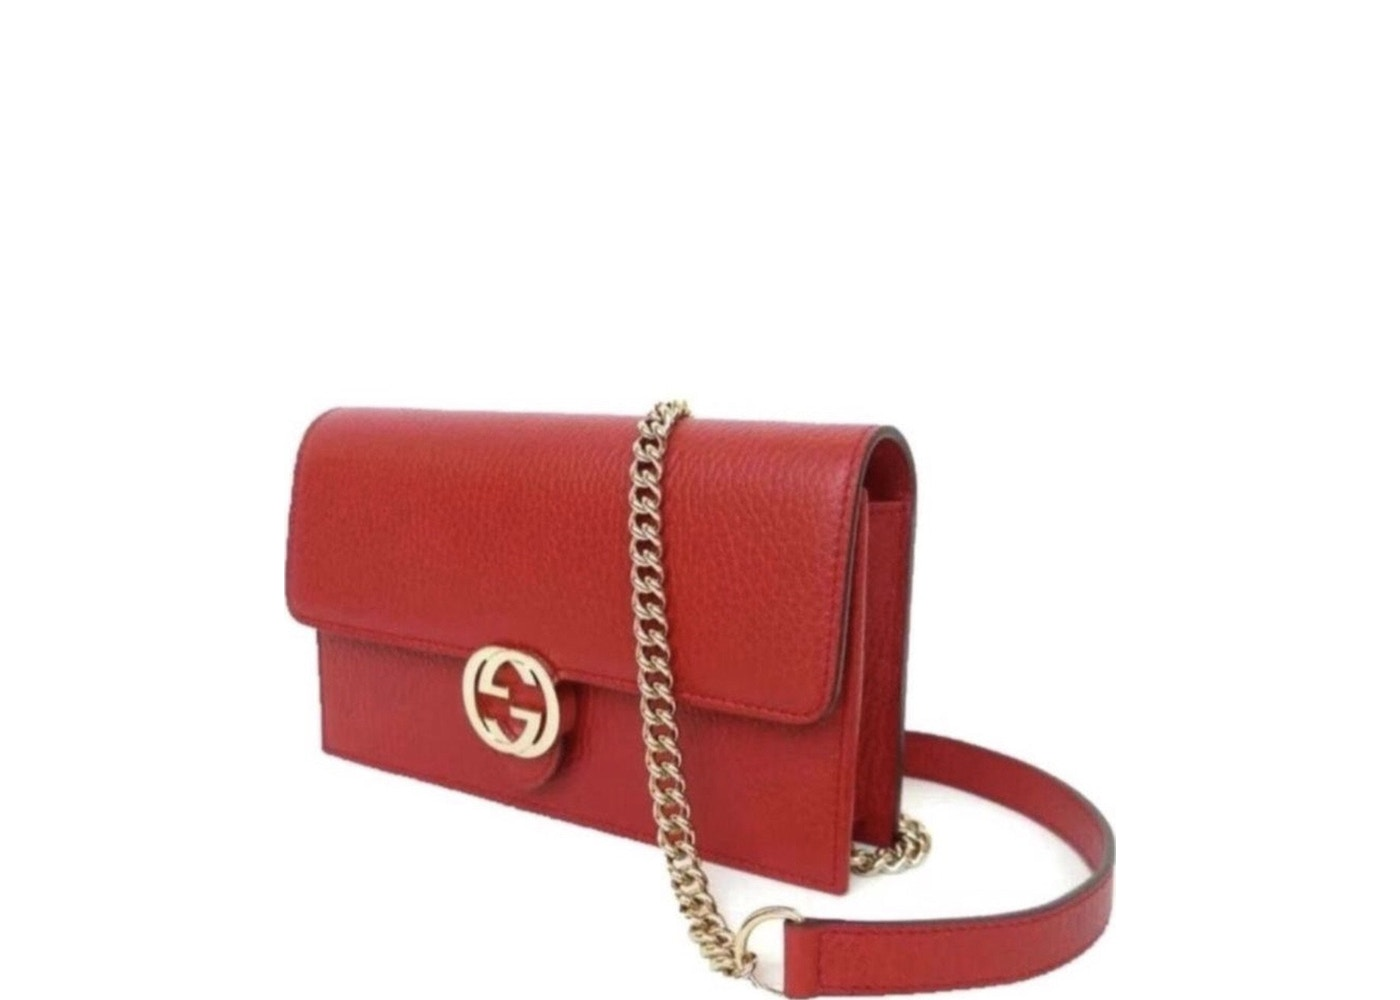 268c7add0ce Gucci Chain Wallet Icon Rich Red. Rich Red